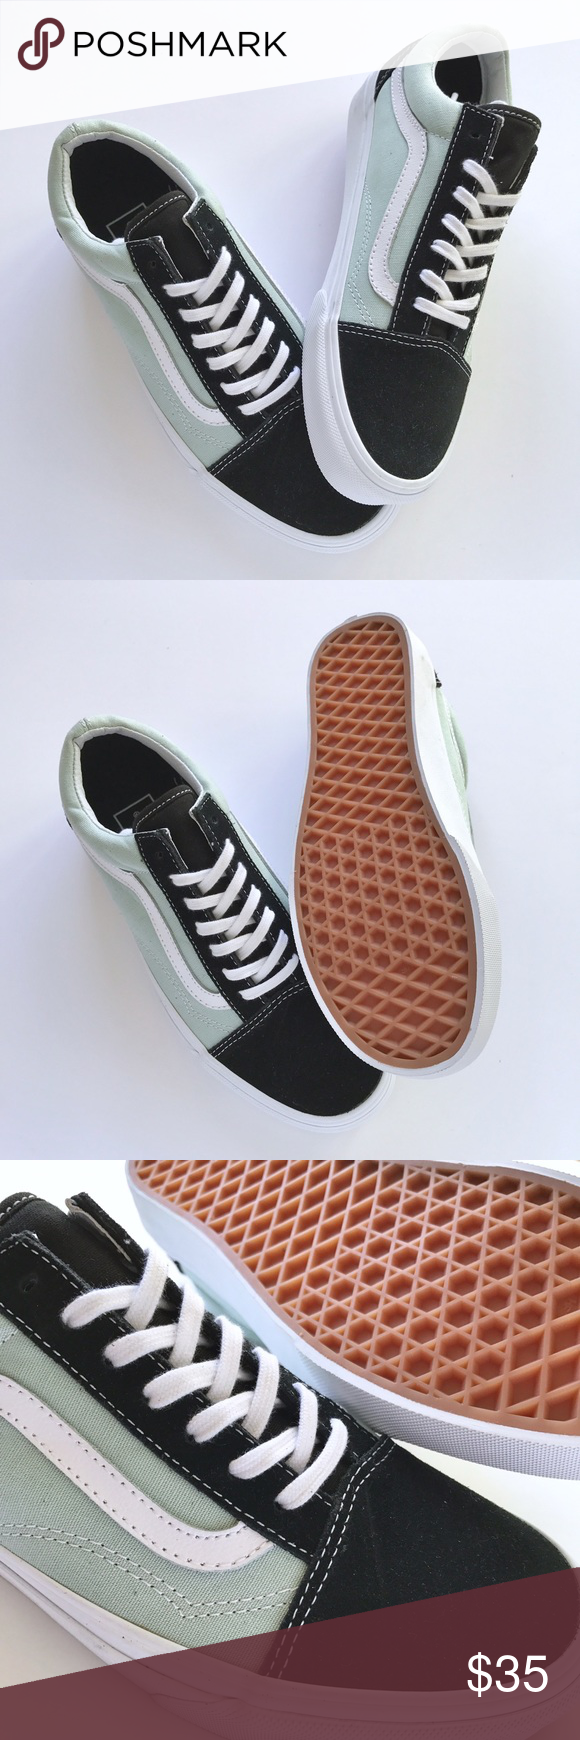 7a770a81bc New    Vans Old Skool Black Mint Never been worn